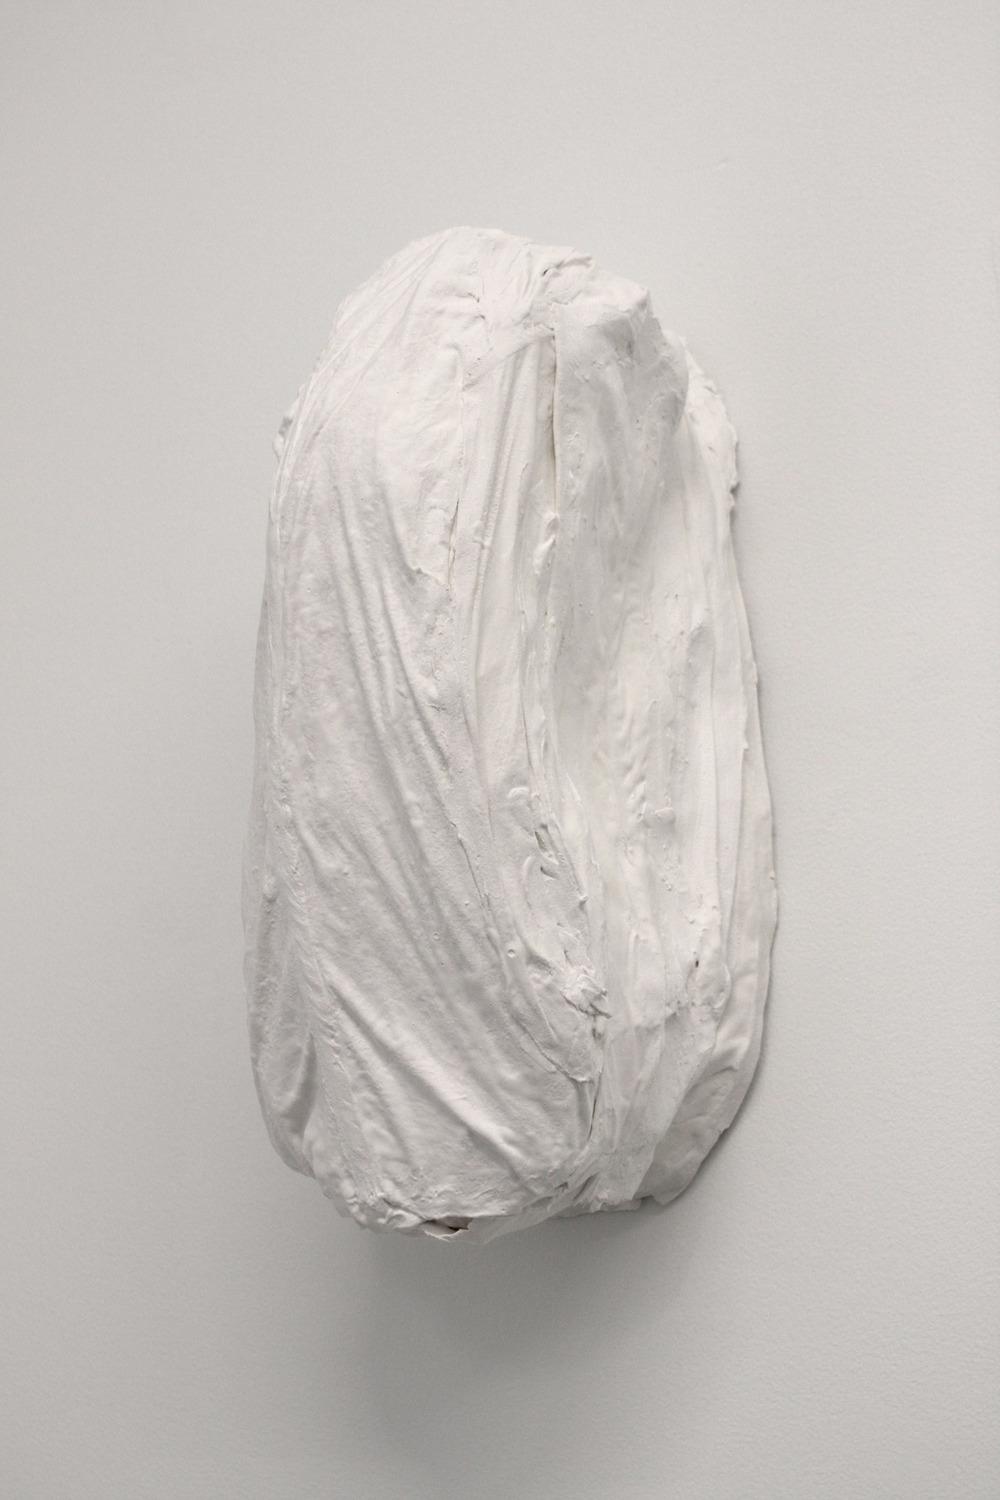 Shoulder Touch   2013 plaster, silk 7.5 x 14 x 7.5 inches